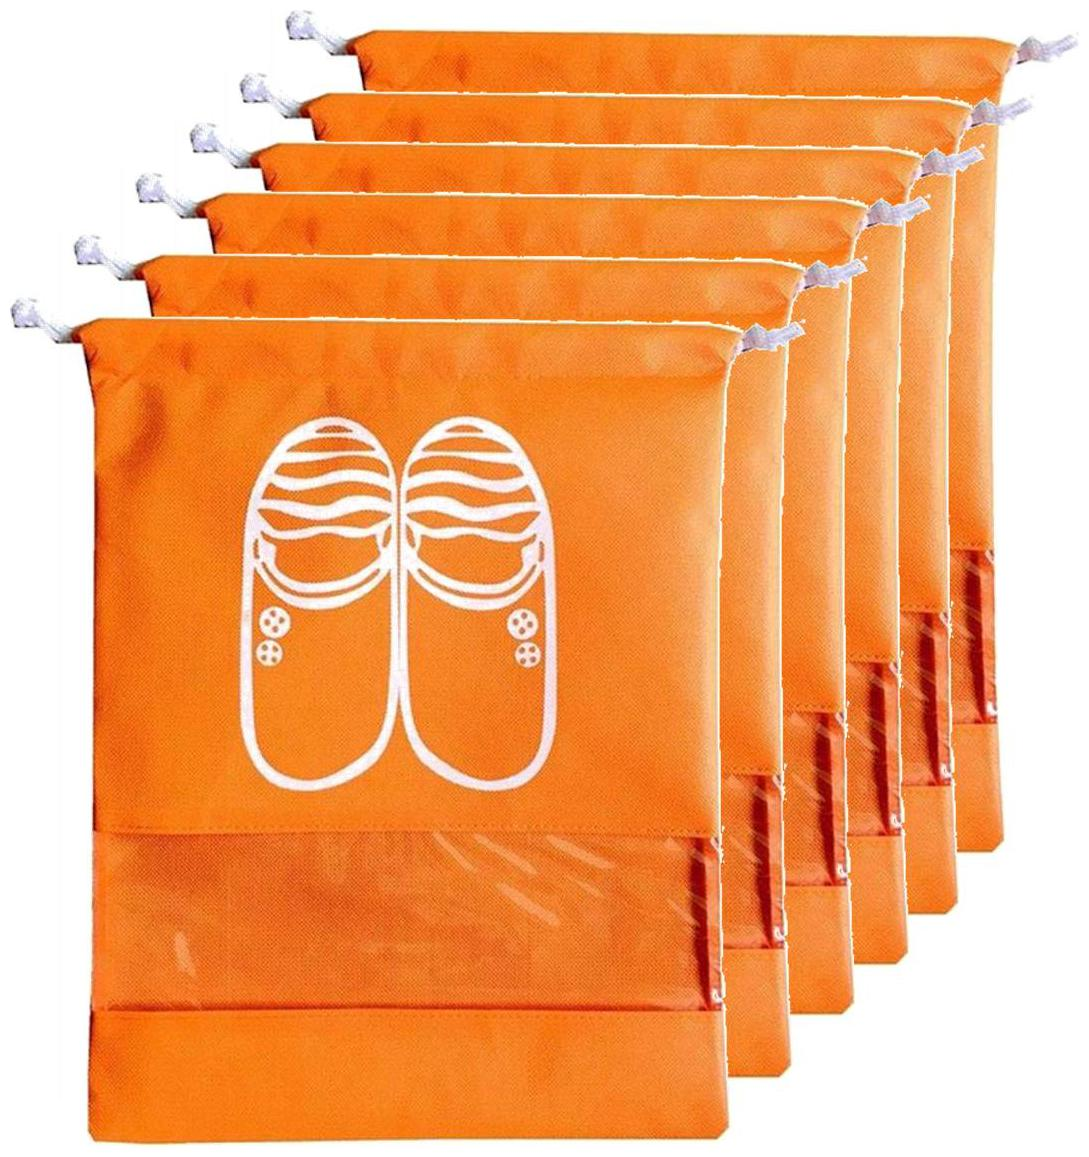 Lify Travel Shoe Bags,Portable Travel Shoe Tote Bags   Packing Organizers For Men And Women  Orange   6 Piece Pack